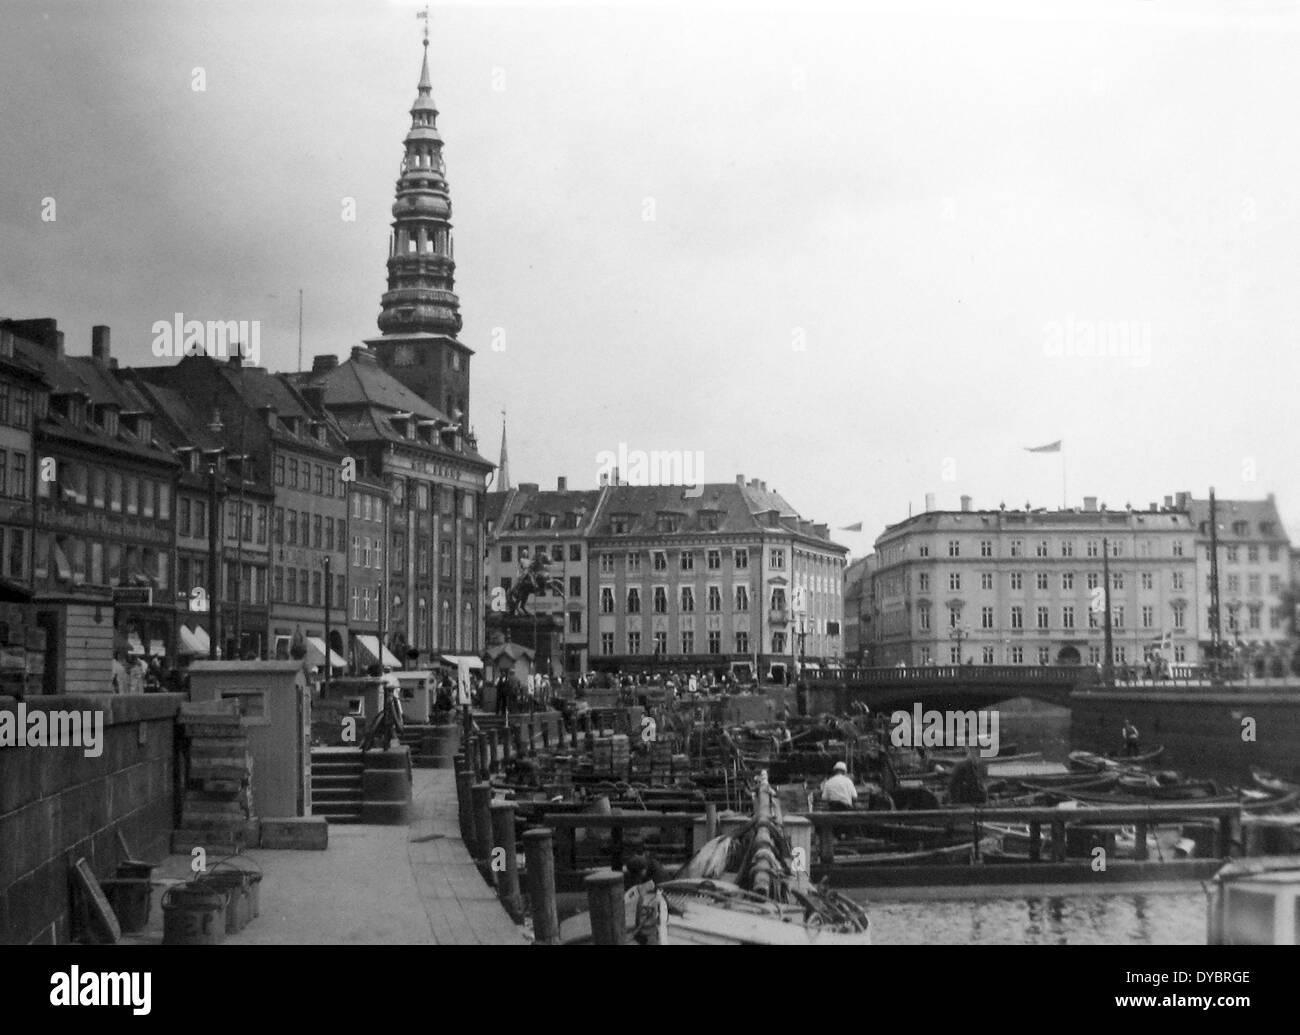 Copenhagen Denmark probably 1930s - Stock Image